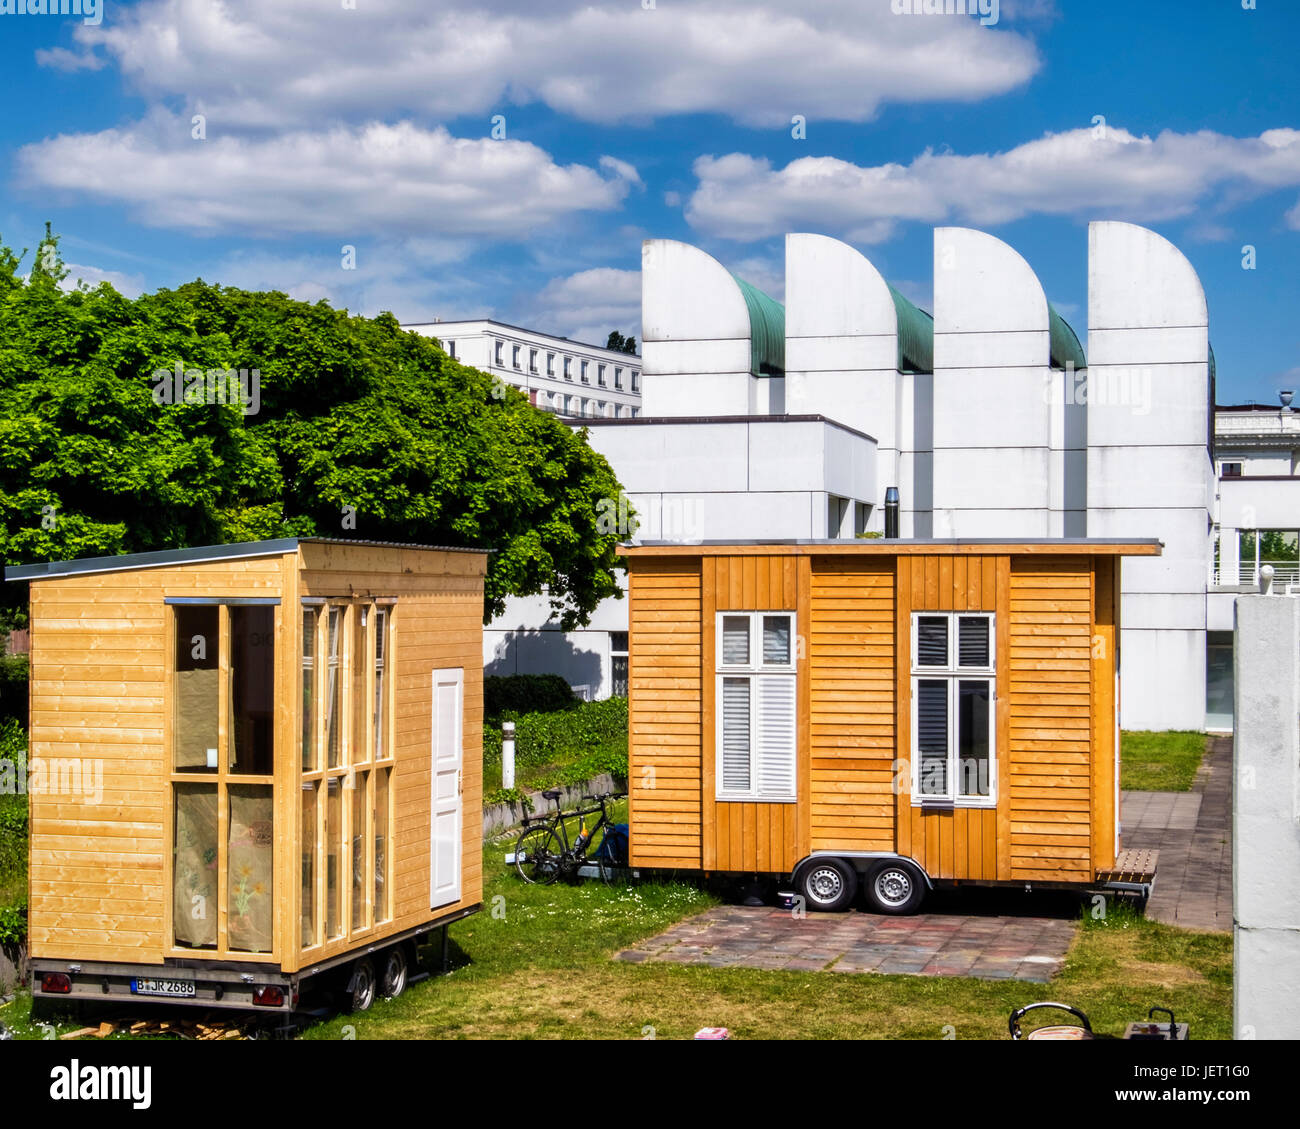 Tiny Haus Berlin Tiny House Berlin Qubomo Tiny House Berlin In Berlin